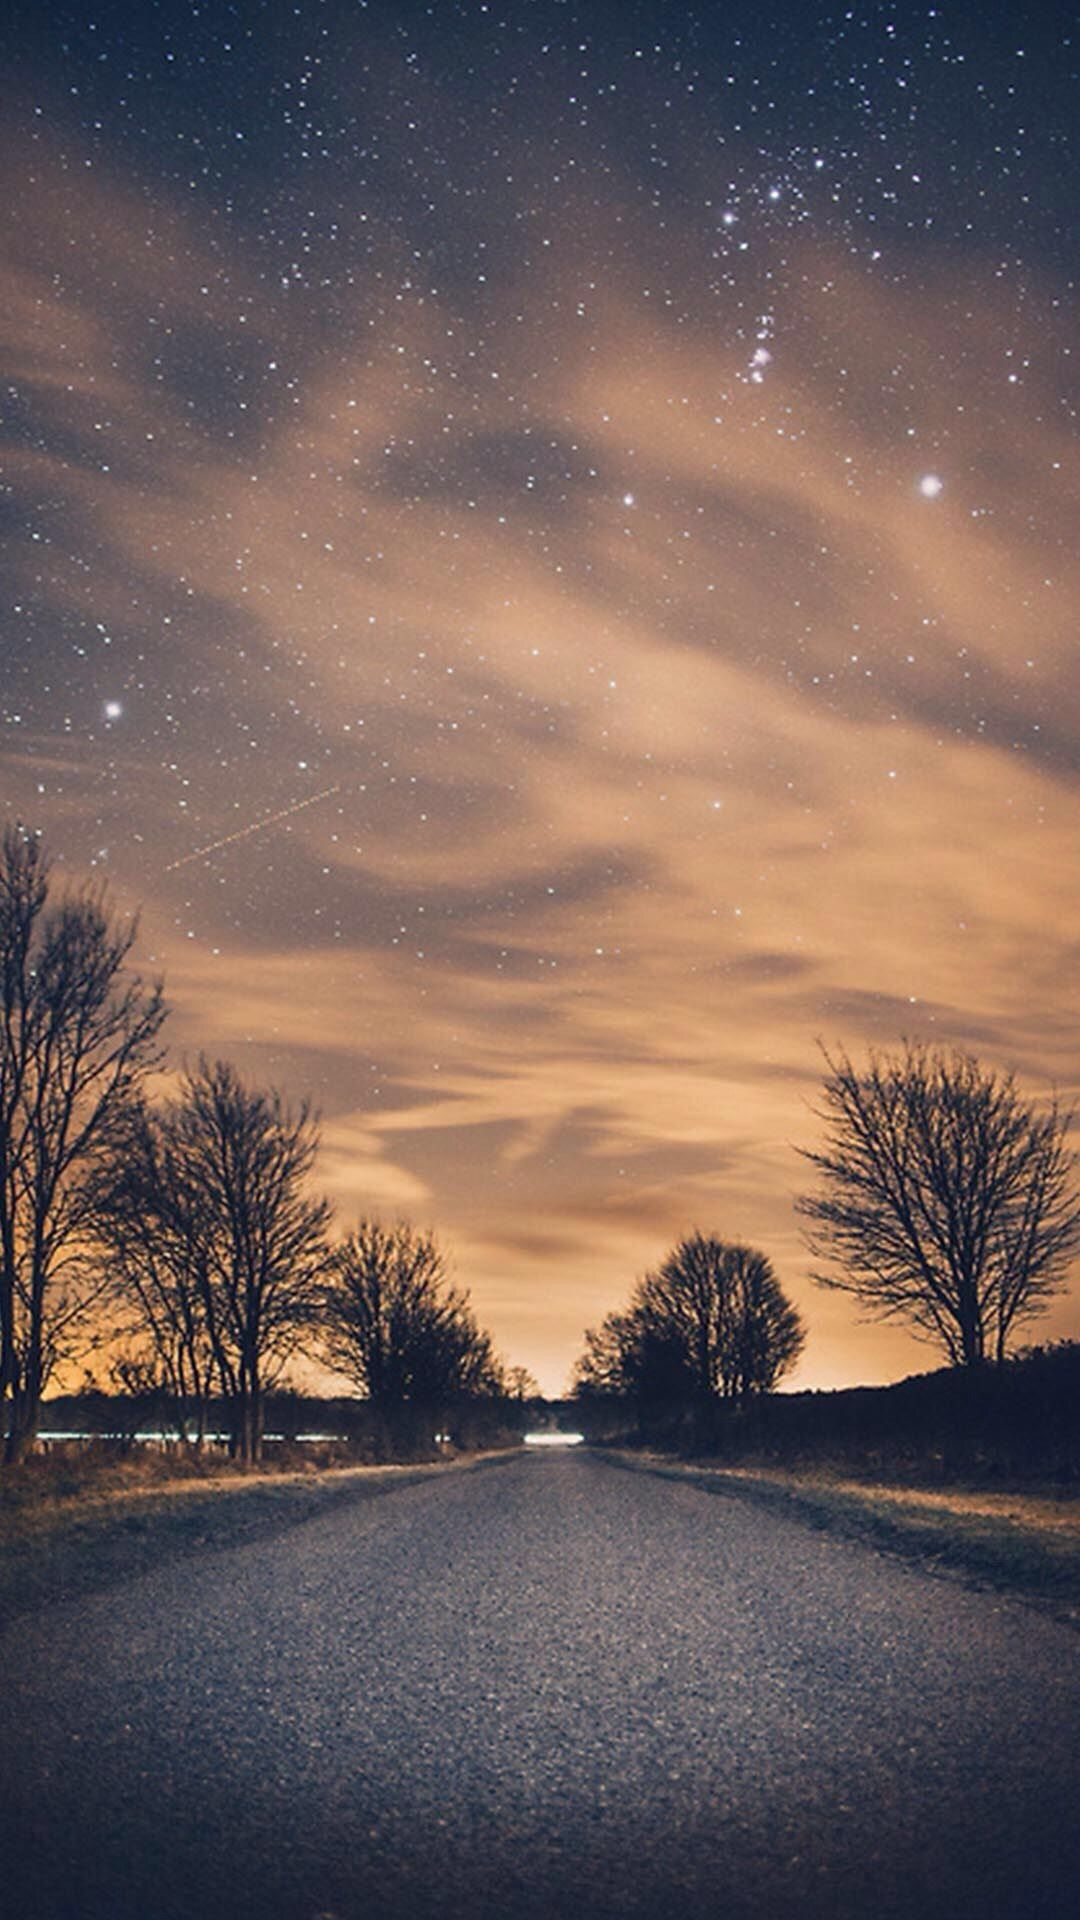 Nature Night Shiny Road Endless Tree Roadside Iphone 6 Wallpaper Nature Iphone Wallpaper Hd Nature Wallpapers New Nature Wallpaper